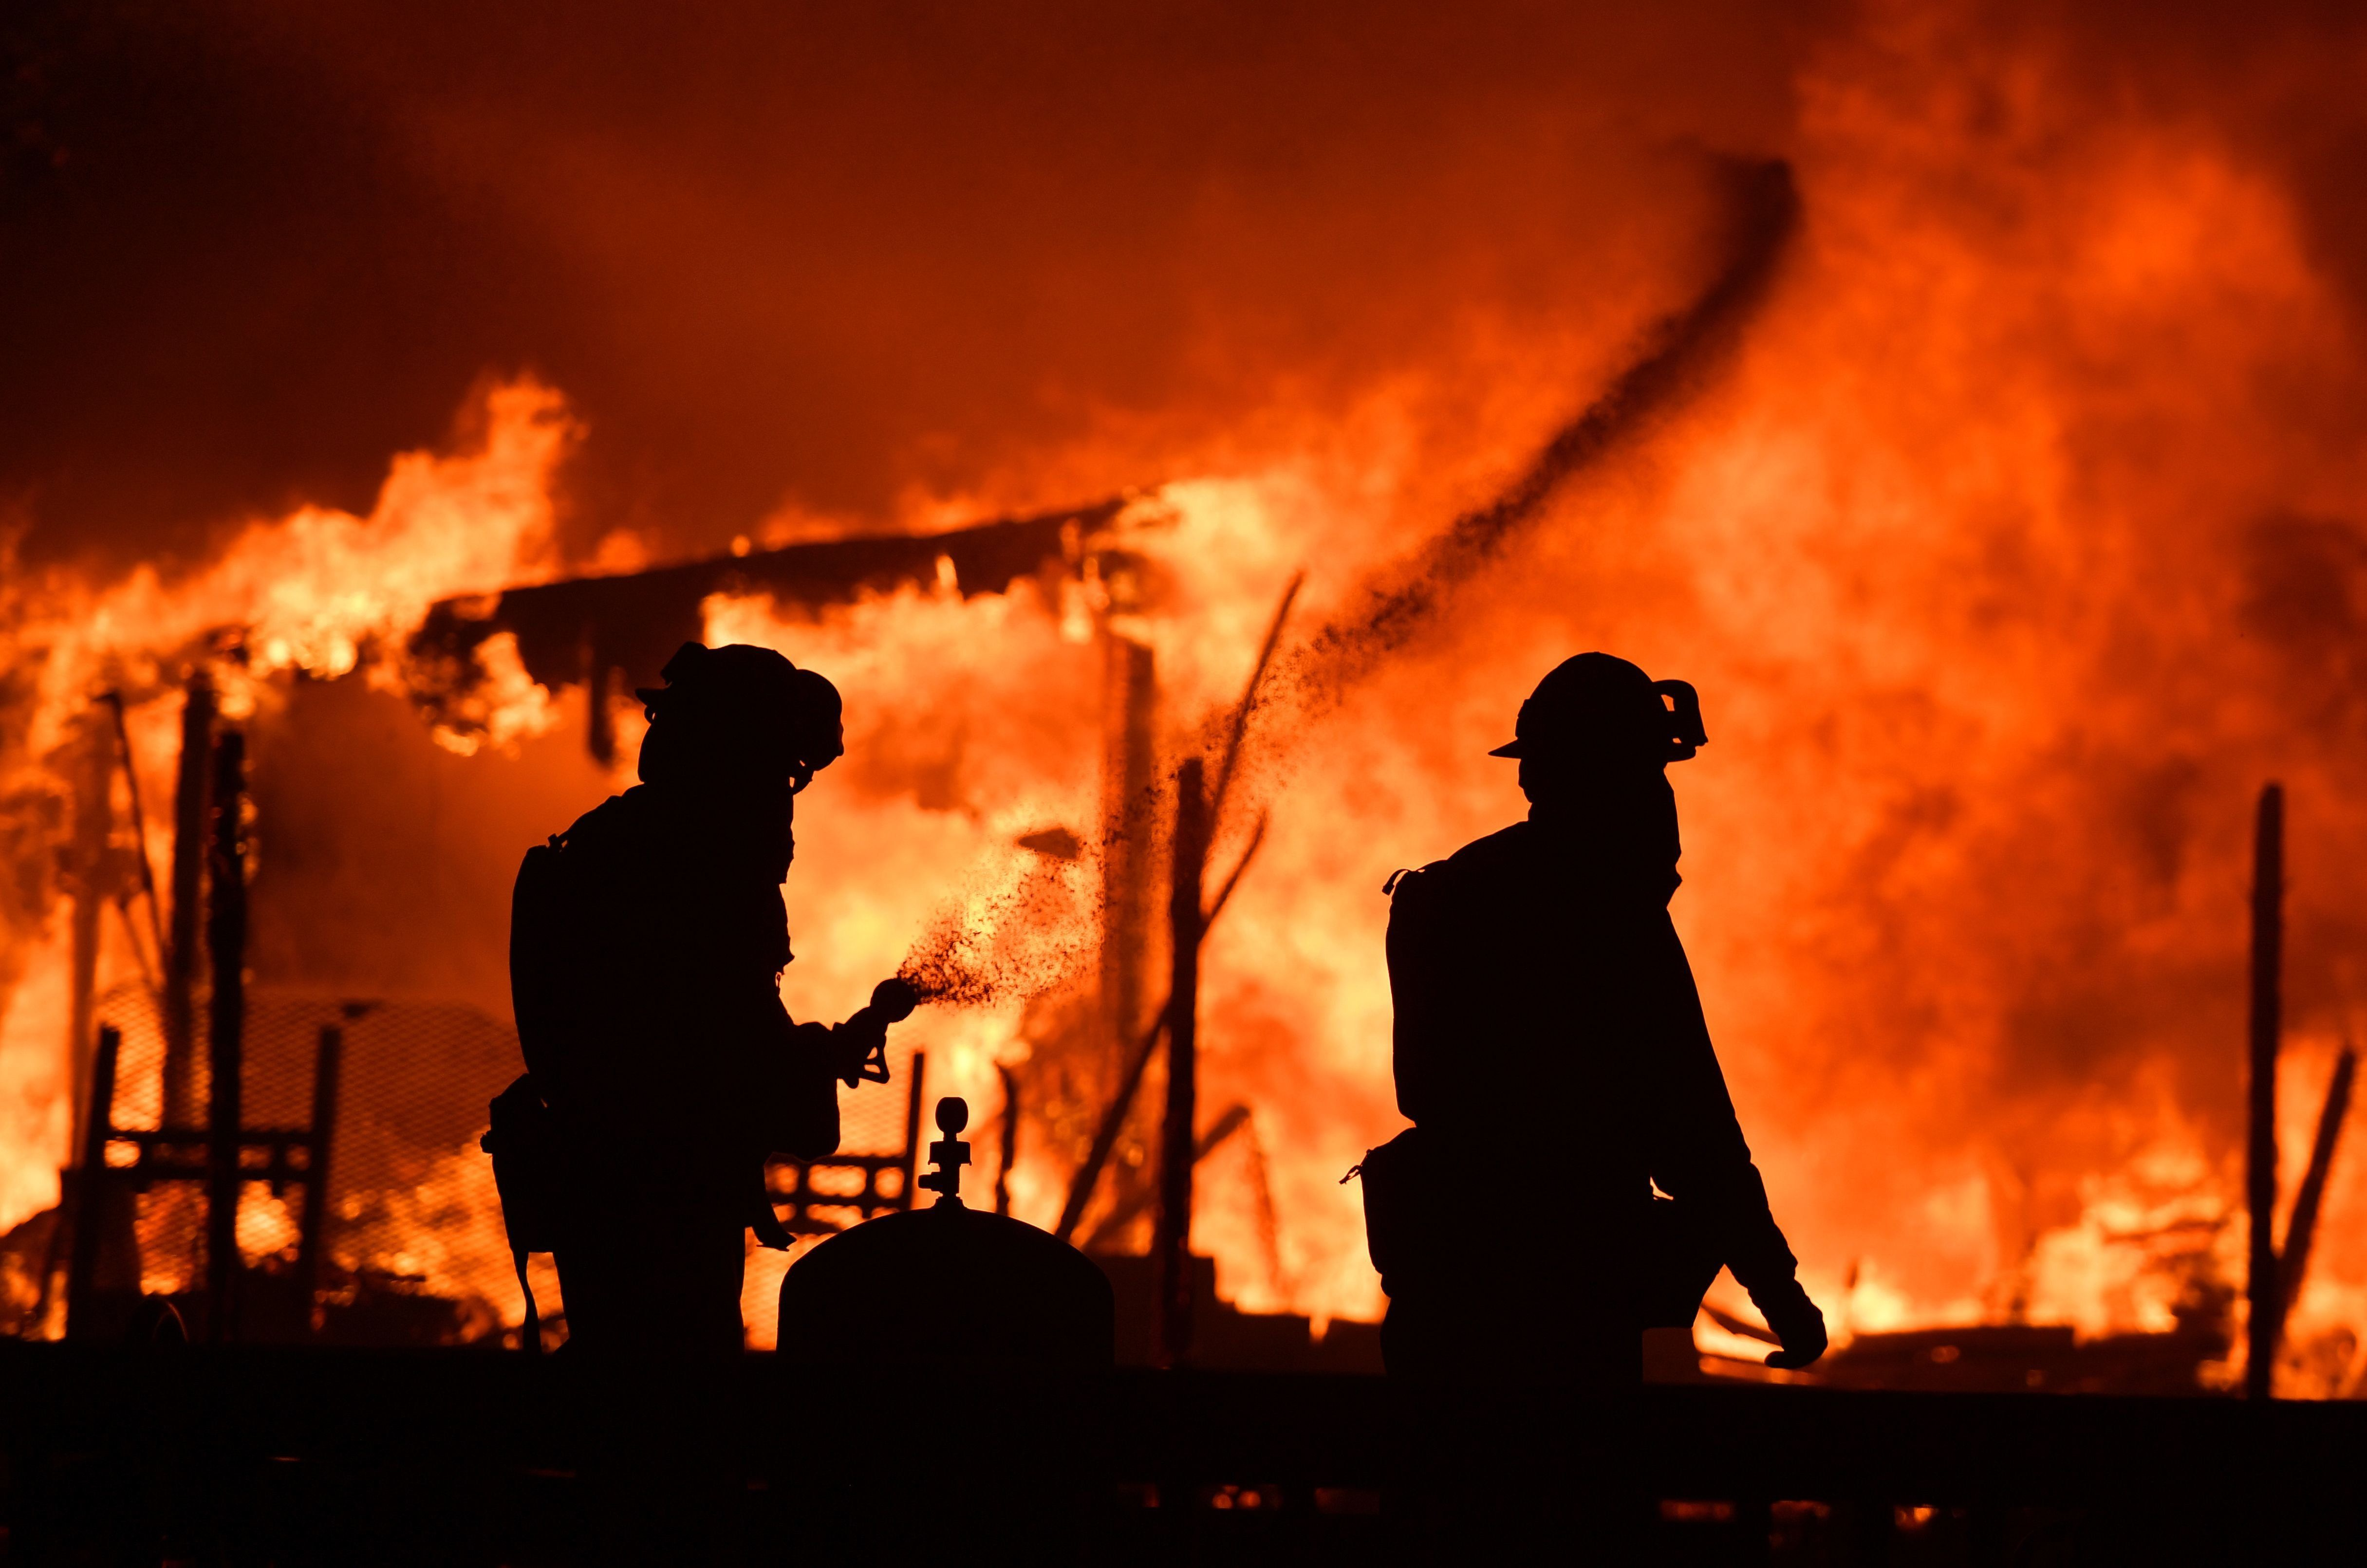 Firefighters douse flames as a home burns in the Napa wine region in California on October 9, 2017, as multiple wind-driven fires continue to whip through the region.  / AFP PHOTO / JOSH EDELSON        (Photo credit should read JOSH EDELSON/AFP/Getty Images)